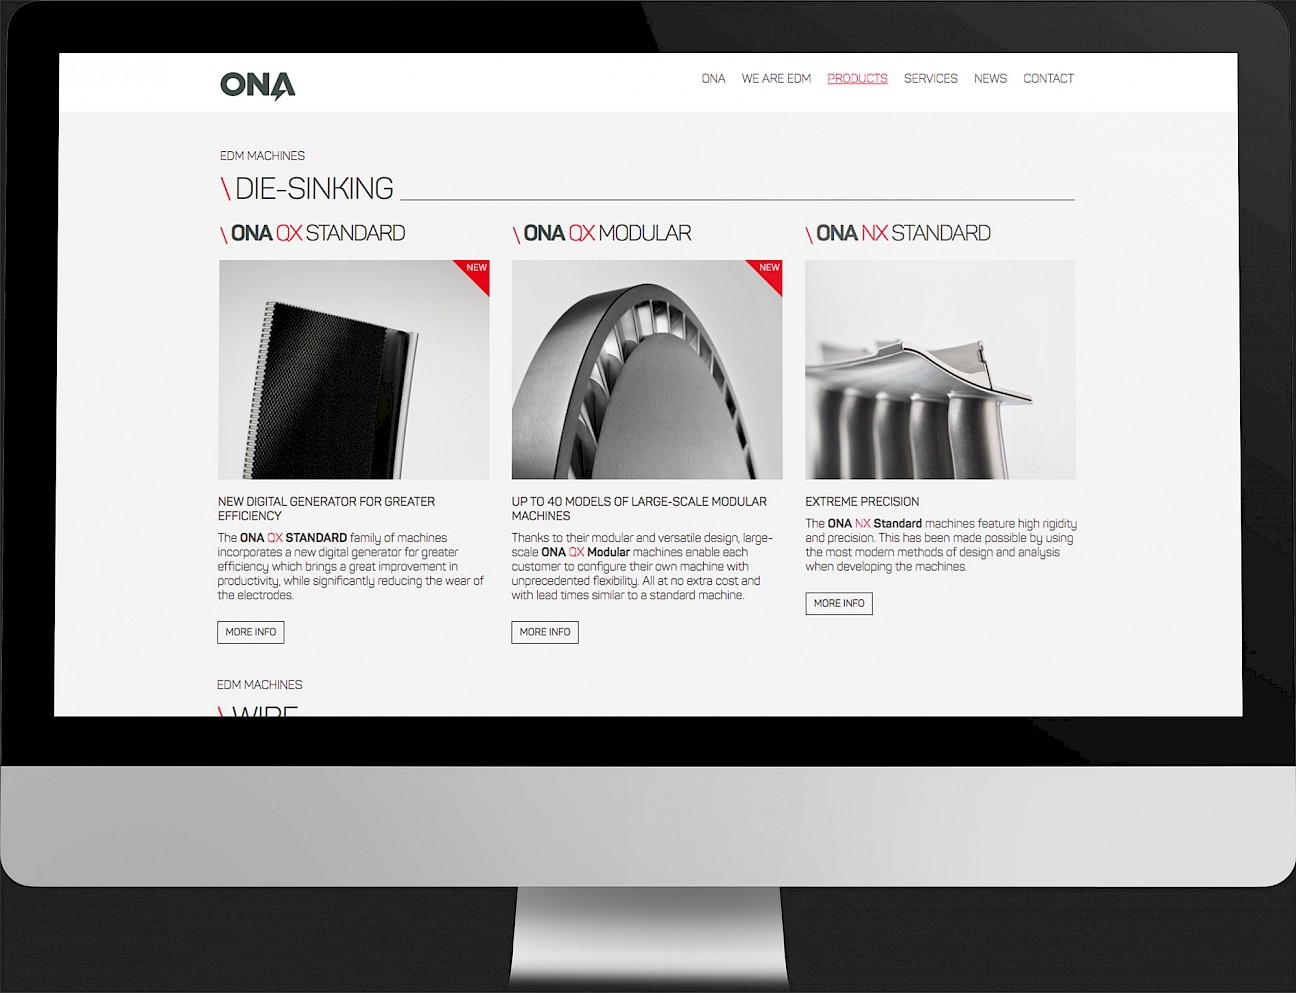 website design move narrative 03 technology branding ona digital spaces